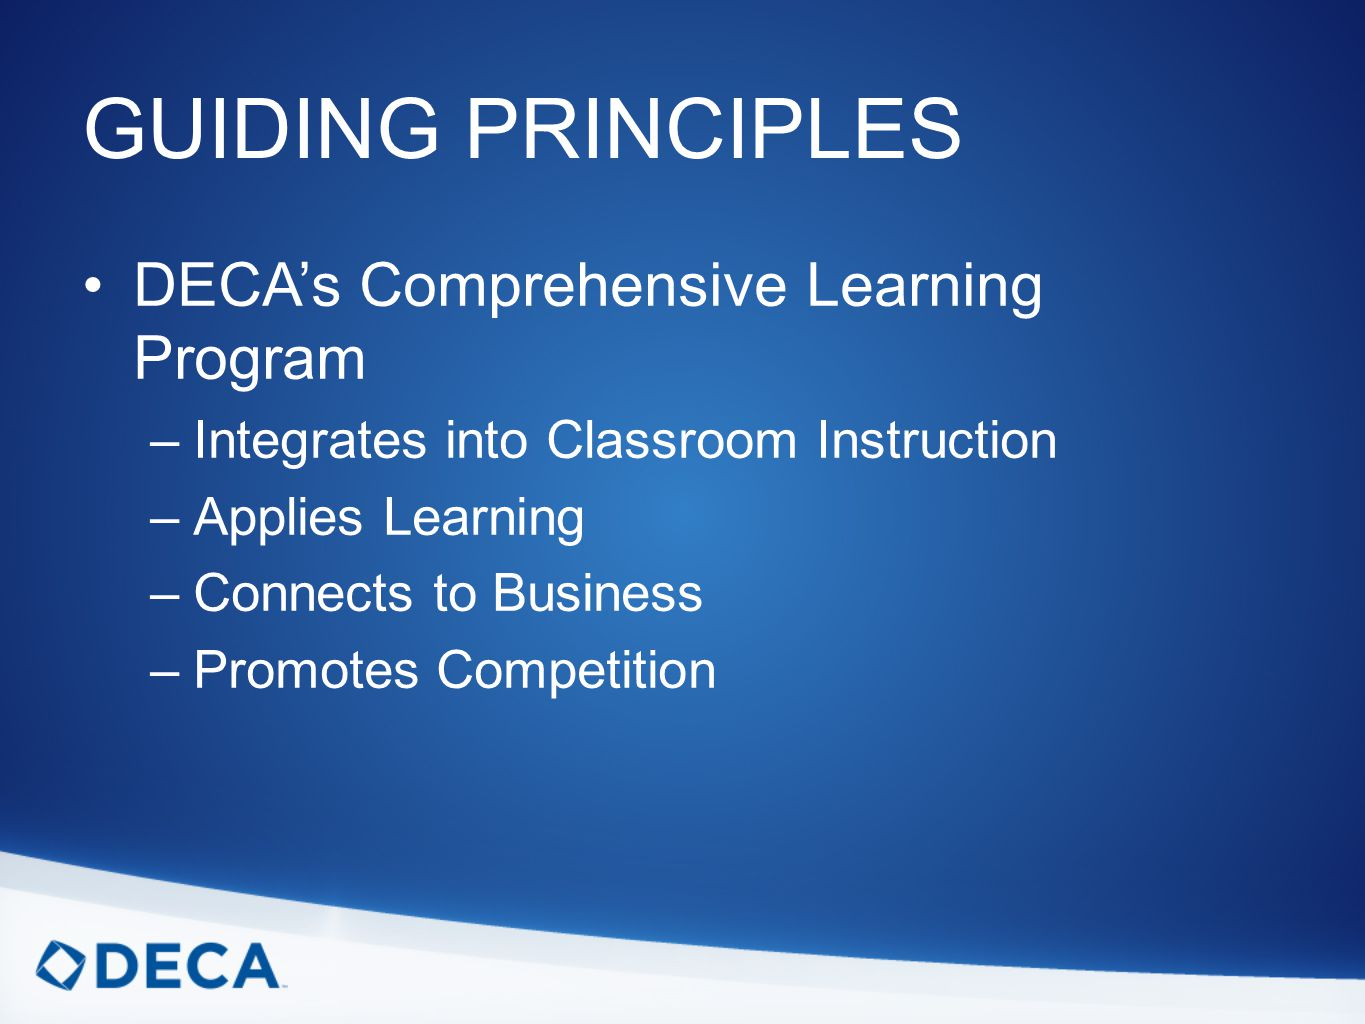 GUIDING PRINCIPLES DECA's Comprehensive Learning Program –Integrates into Classroom Instruction –Applies Learning –Connects to Business –Promotes Competition